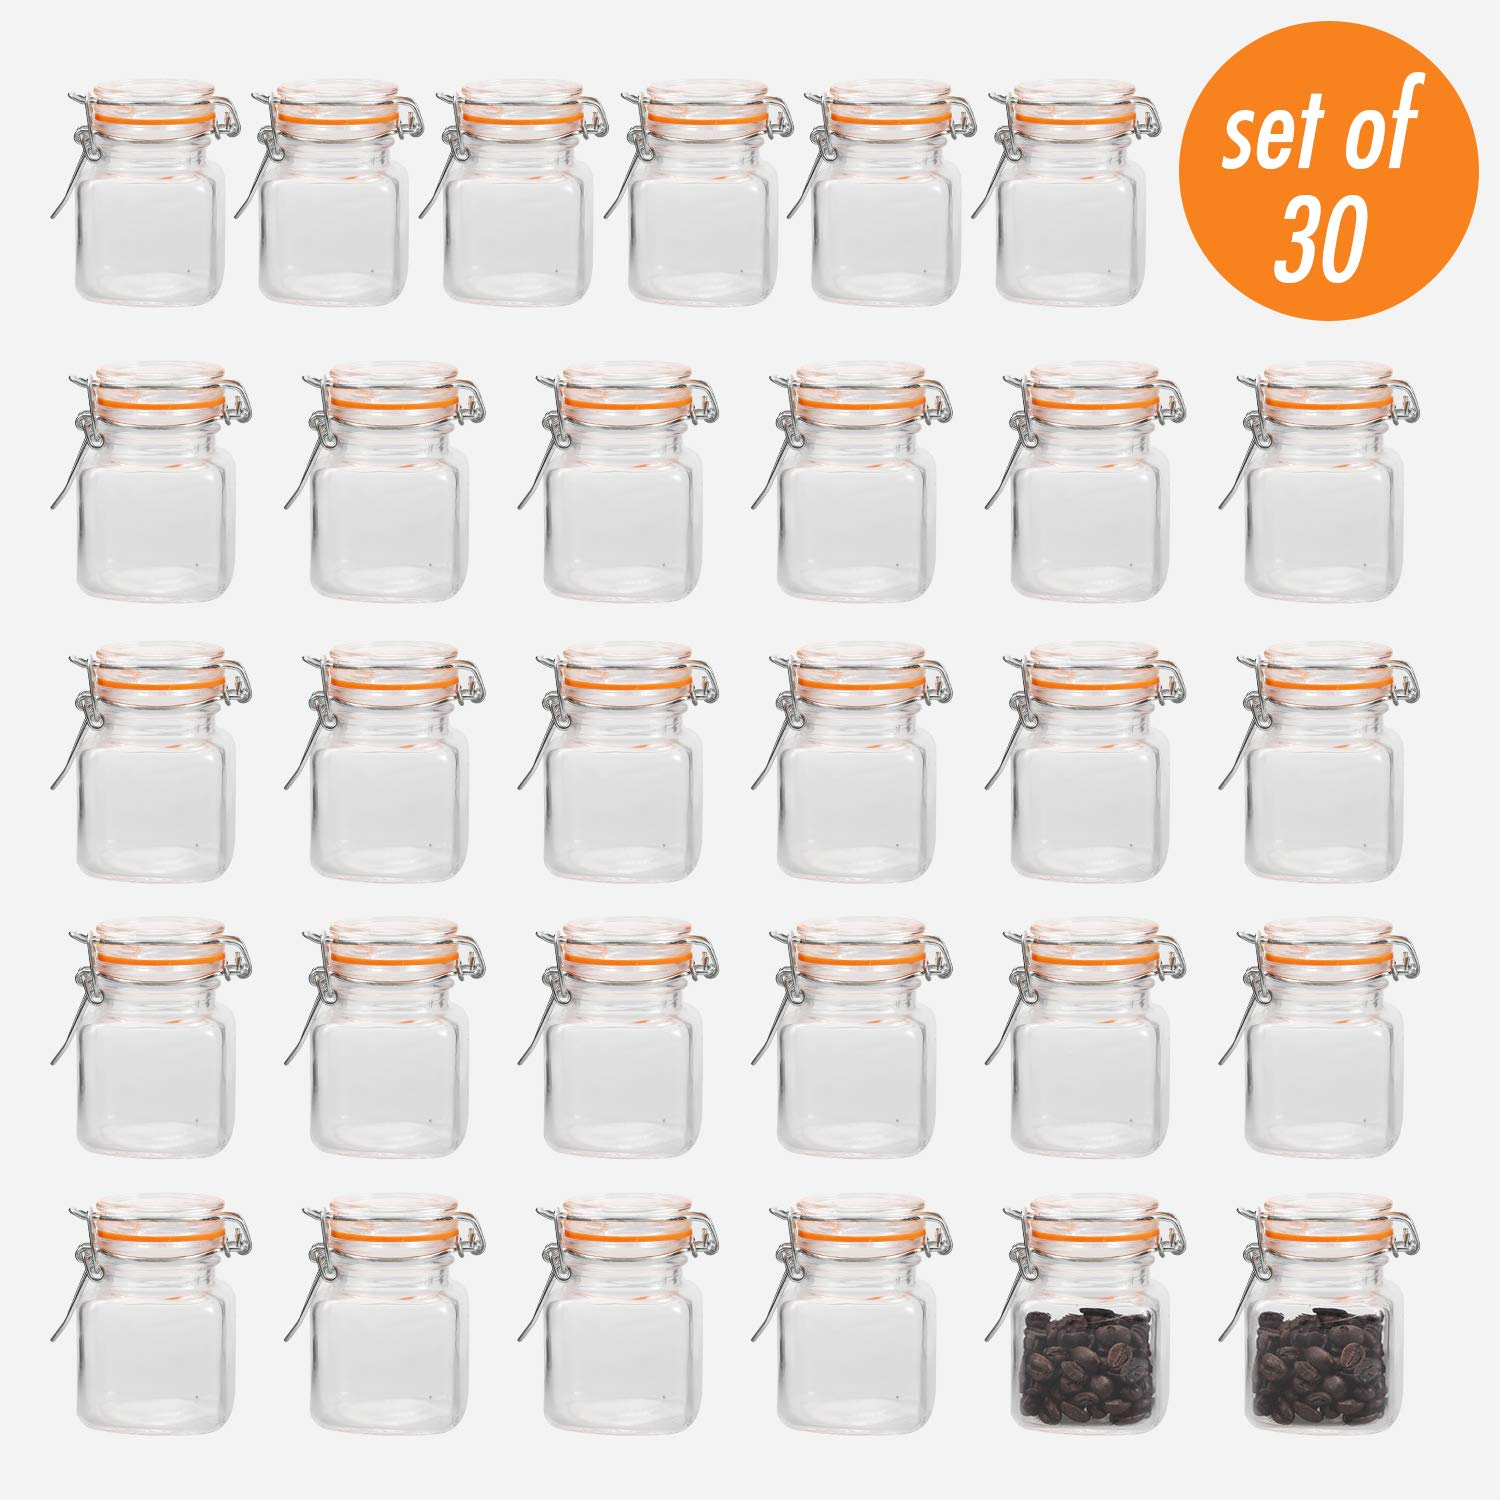 Encheng 4 oz Glass Jars With Airtight Lids And Leak Proof Rubber Gasket,Small Mason Jars With Hinged Lids For Kitchen, Mini Spice Jars 30 Pack